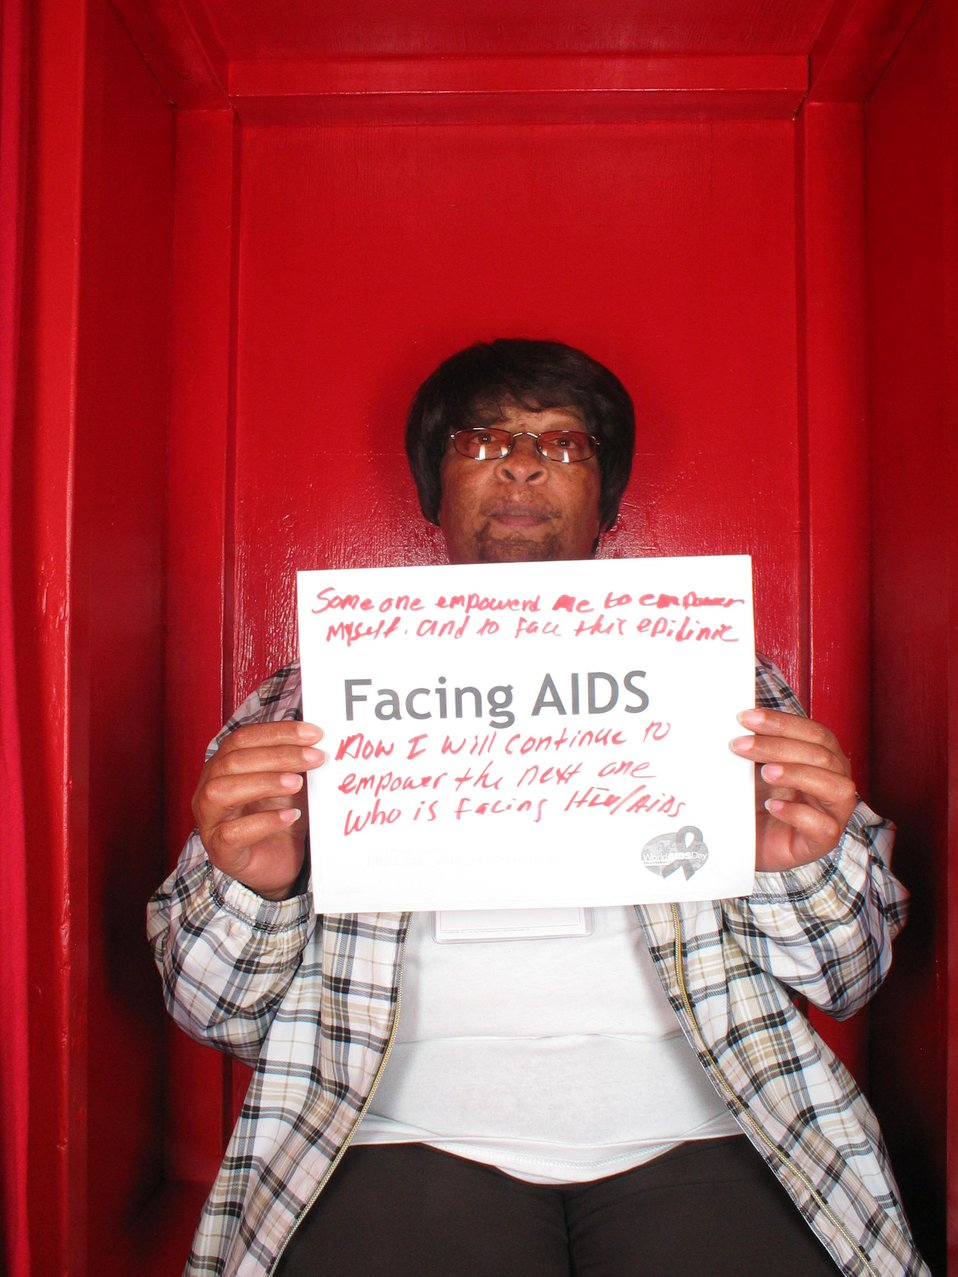 Facing AIDS Someone empowered me to empower myself and to face this epidemic. Now I will continue to empower the next one who is facing HIV/AIDS.